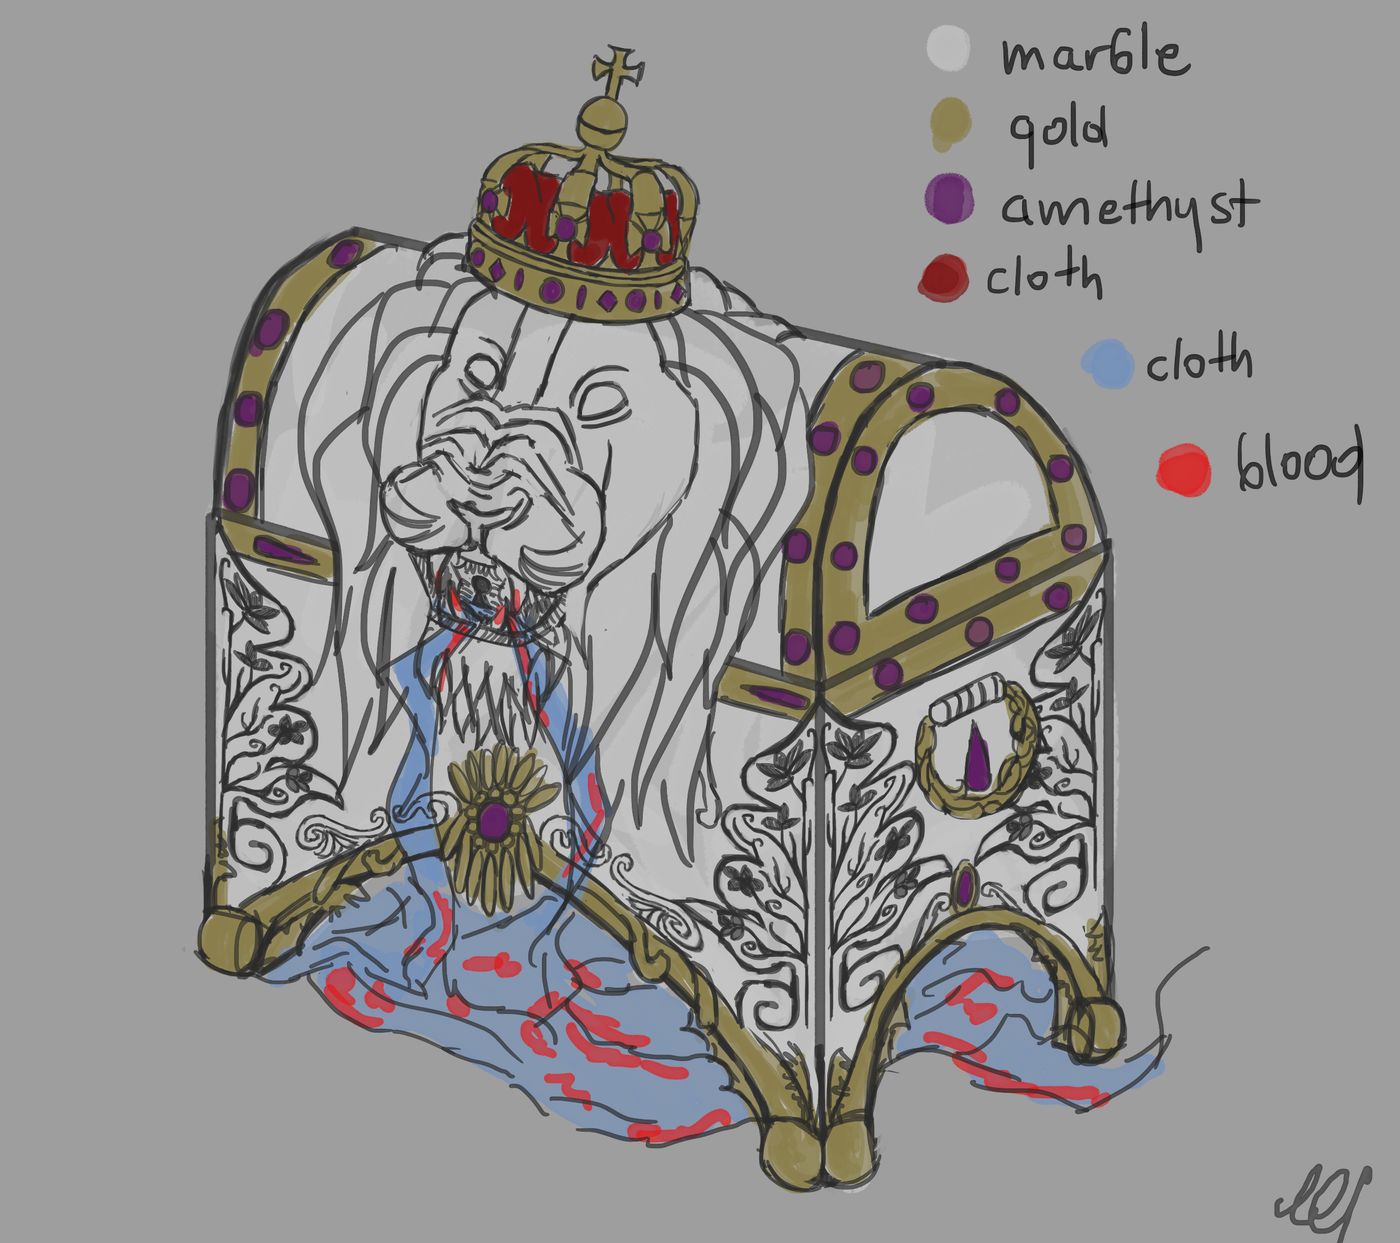 Pride%20 Chest%20concept%20 Art%20 Front Aonee